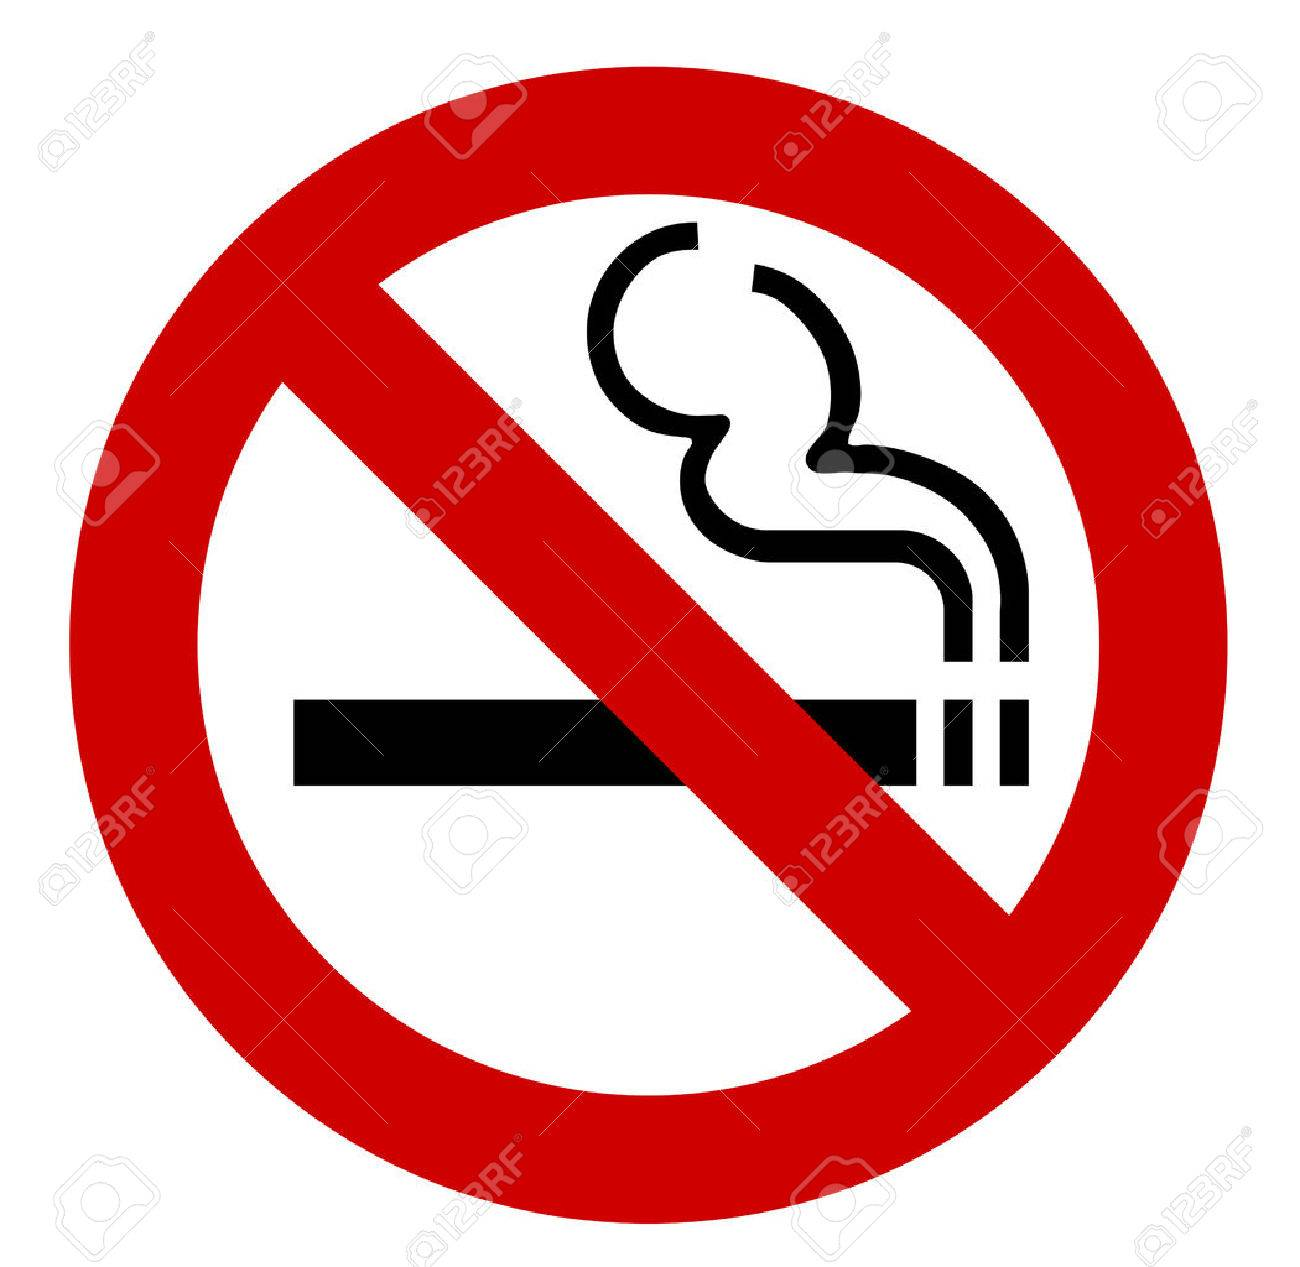 No smoking stock photos royalty free business images no smoking sign vector illustration buycottarizona Images